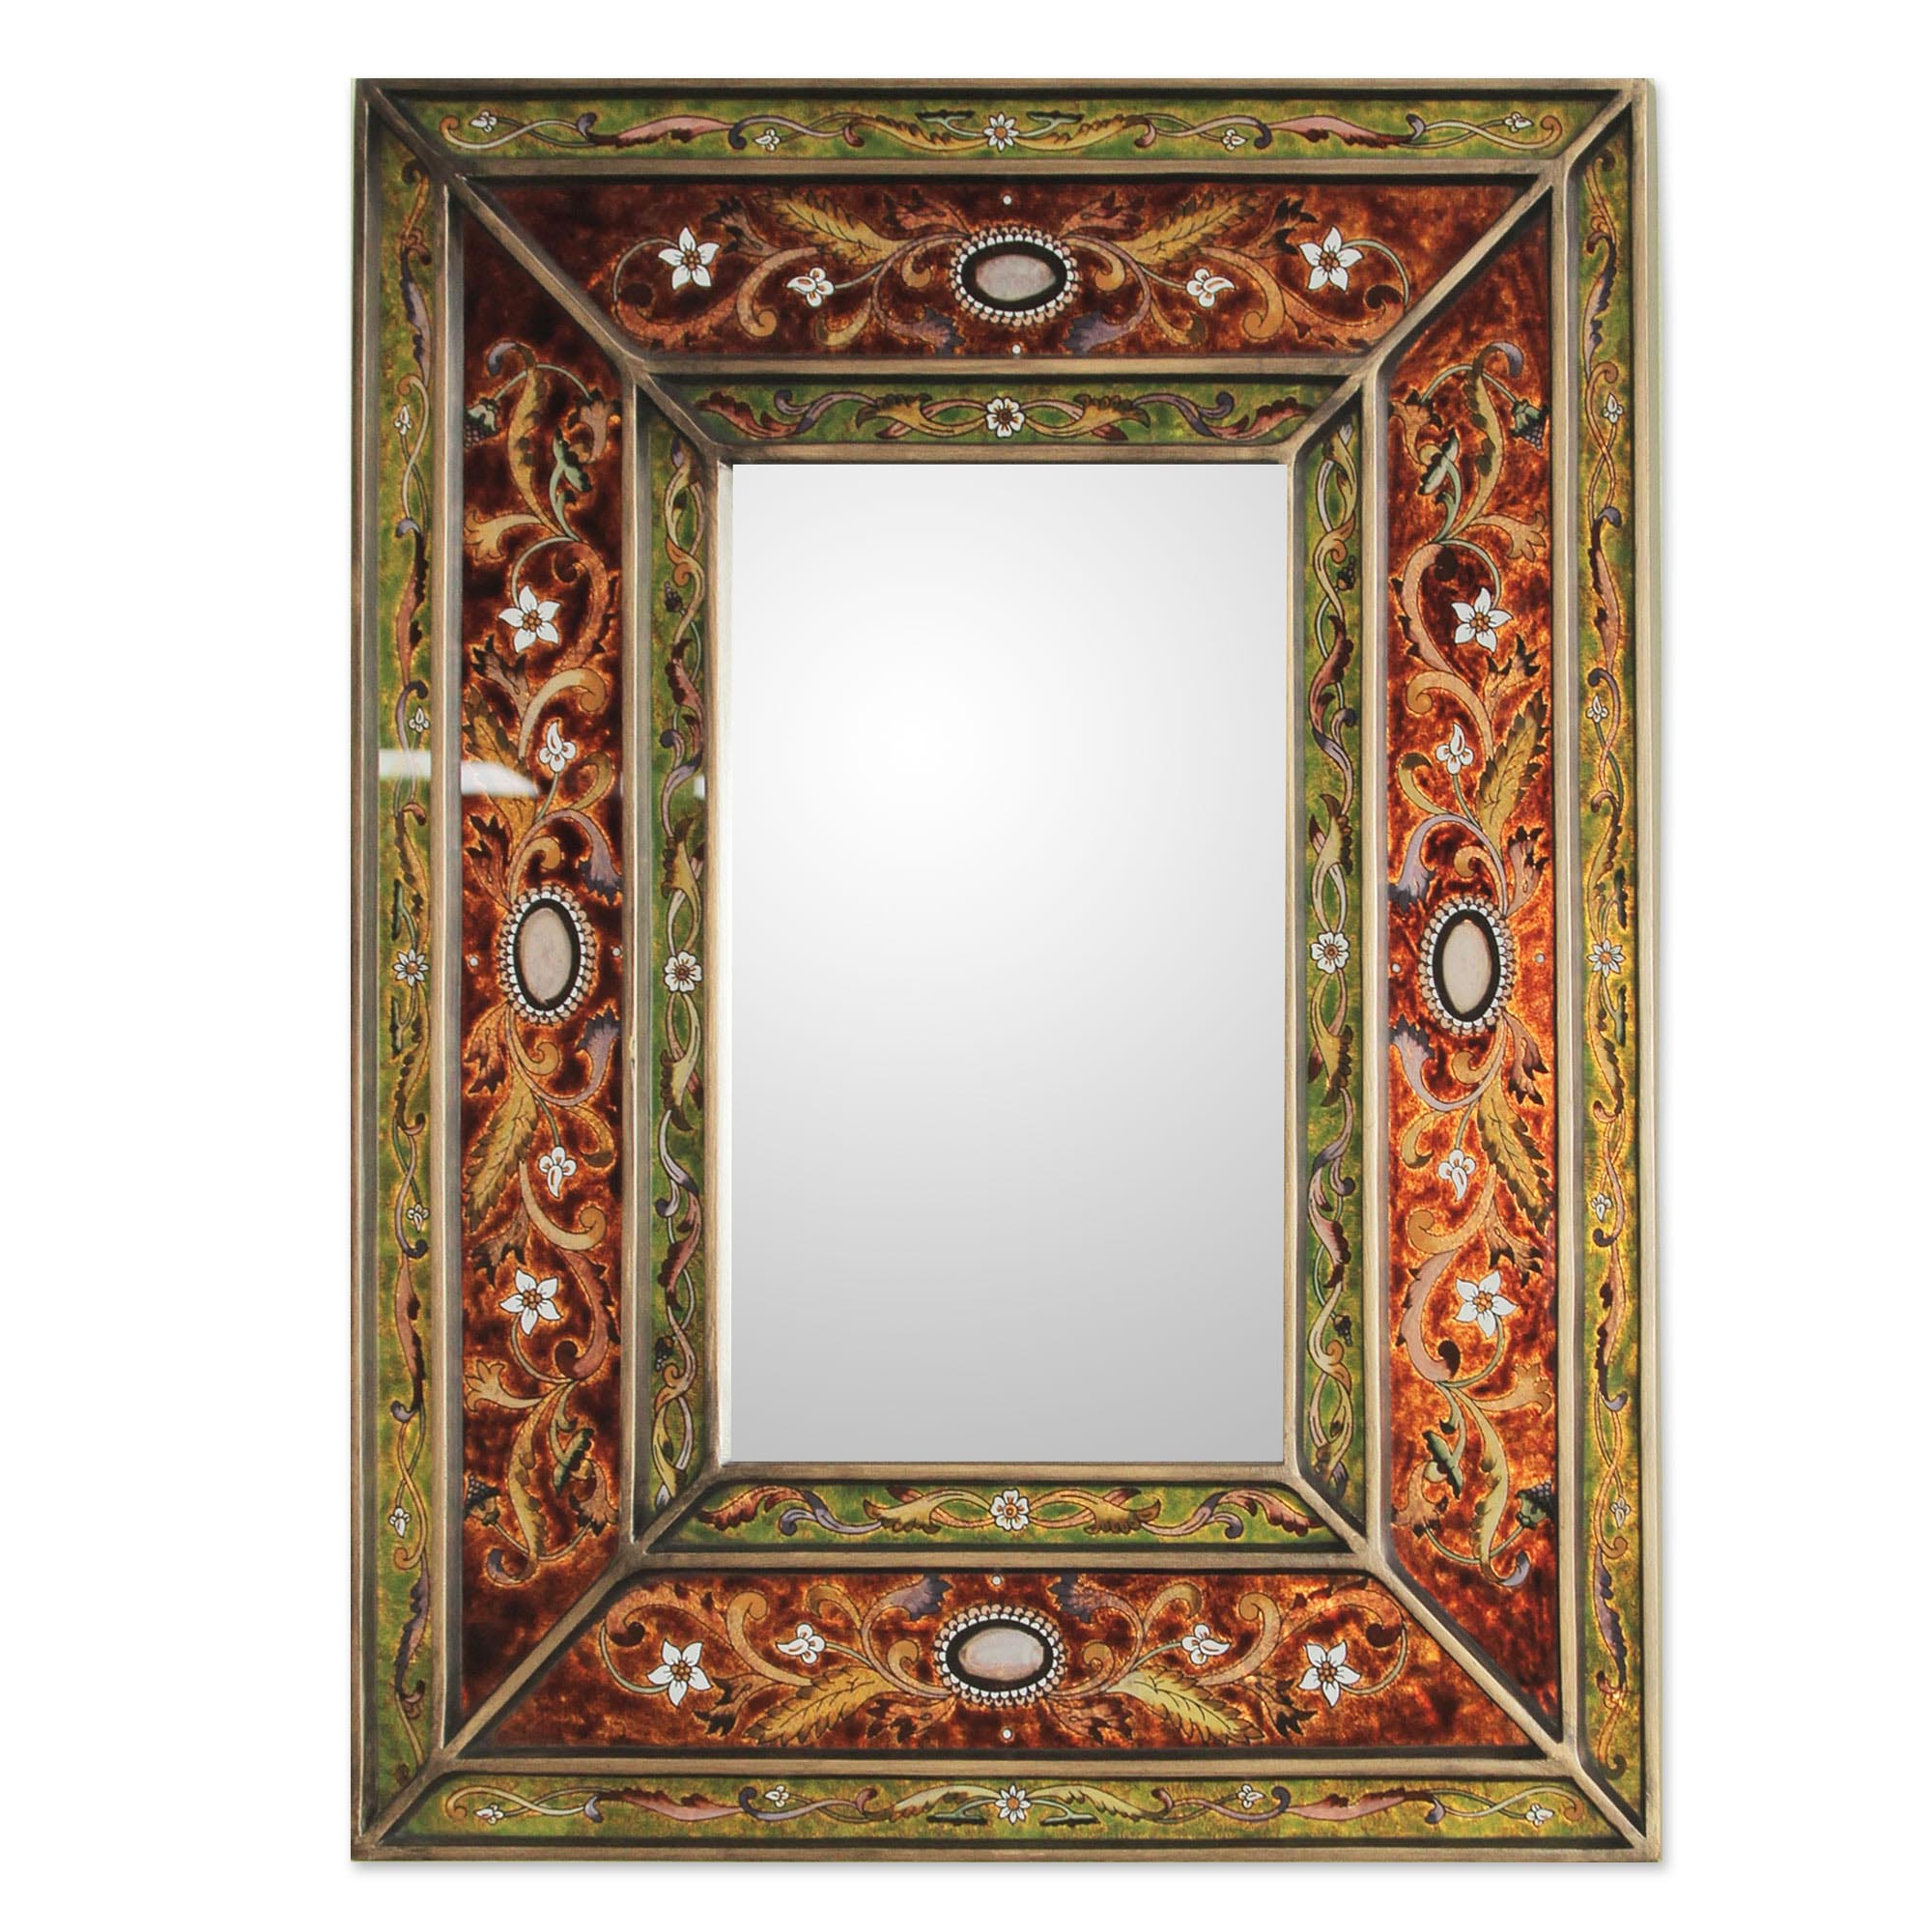 Antique Wall Mirrors Decorative  Best Decor Things. Living Room Curtains Bed Bath And Beyond. Living Room Sectional Sofa. Living Room Console. Benches For Living Room. Rattan Side Tables Living Room. Decoration Ideas For Living Room. Wicker Living Room Sets. Yellow Black Grey Living Room